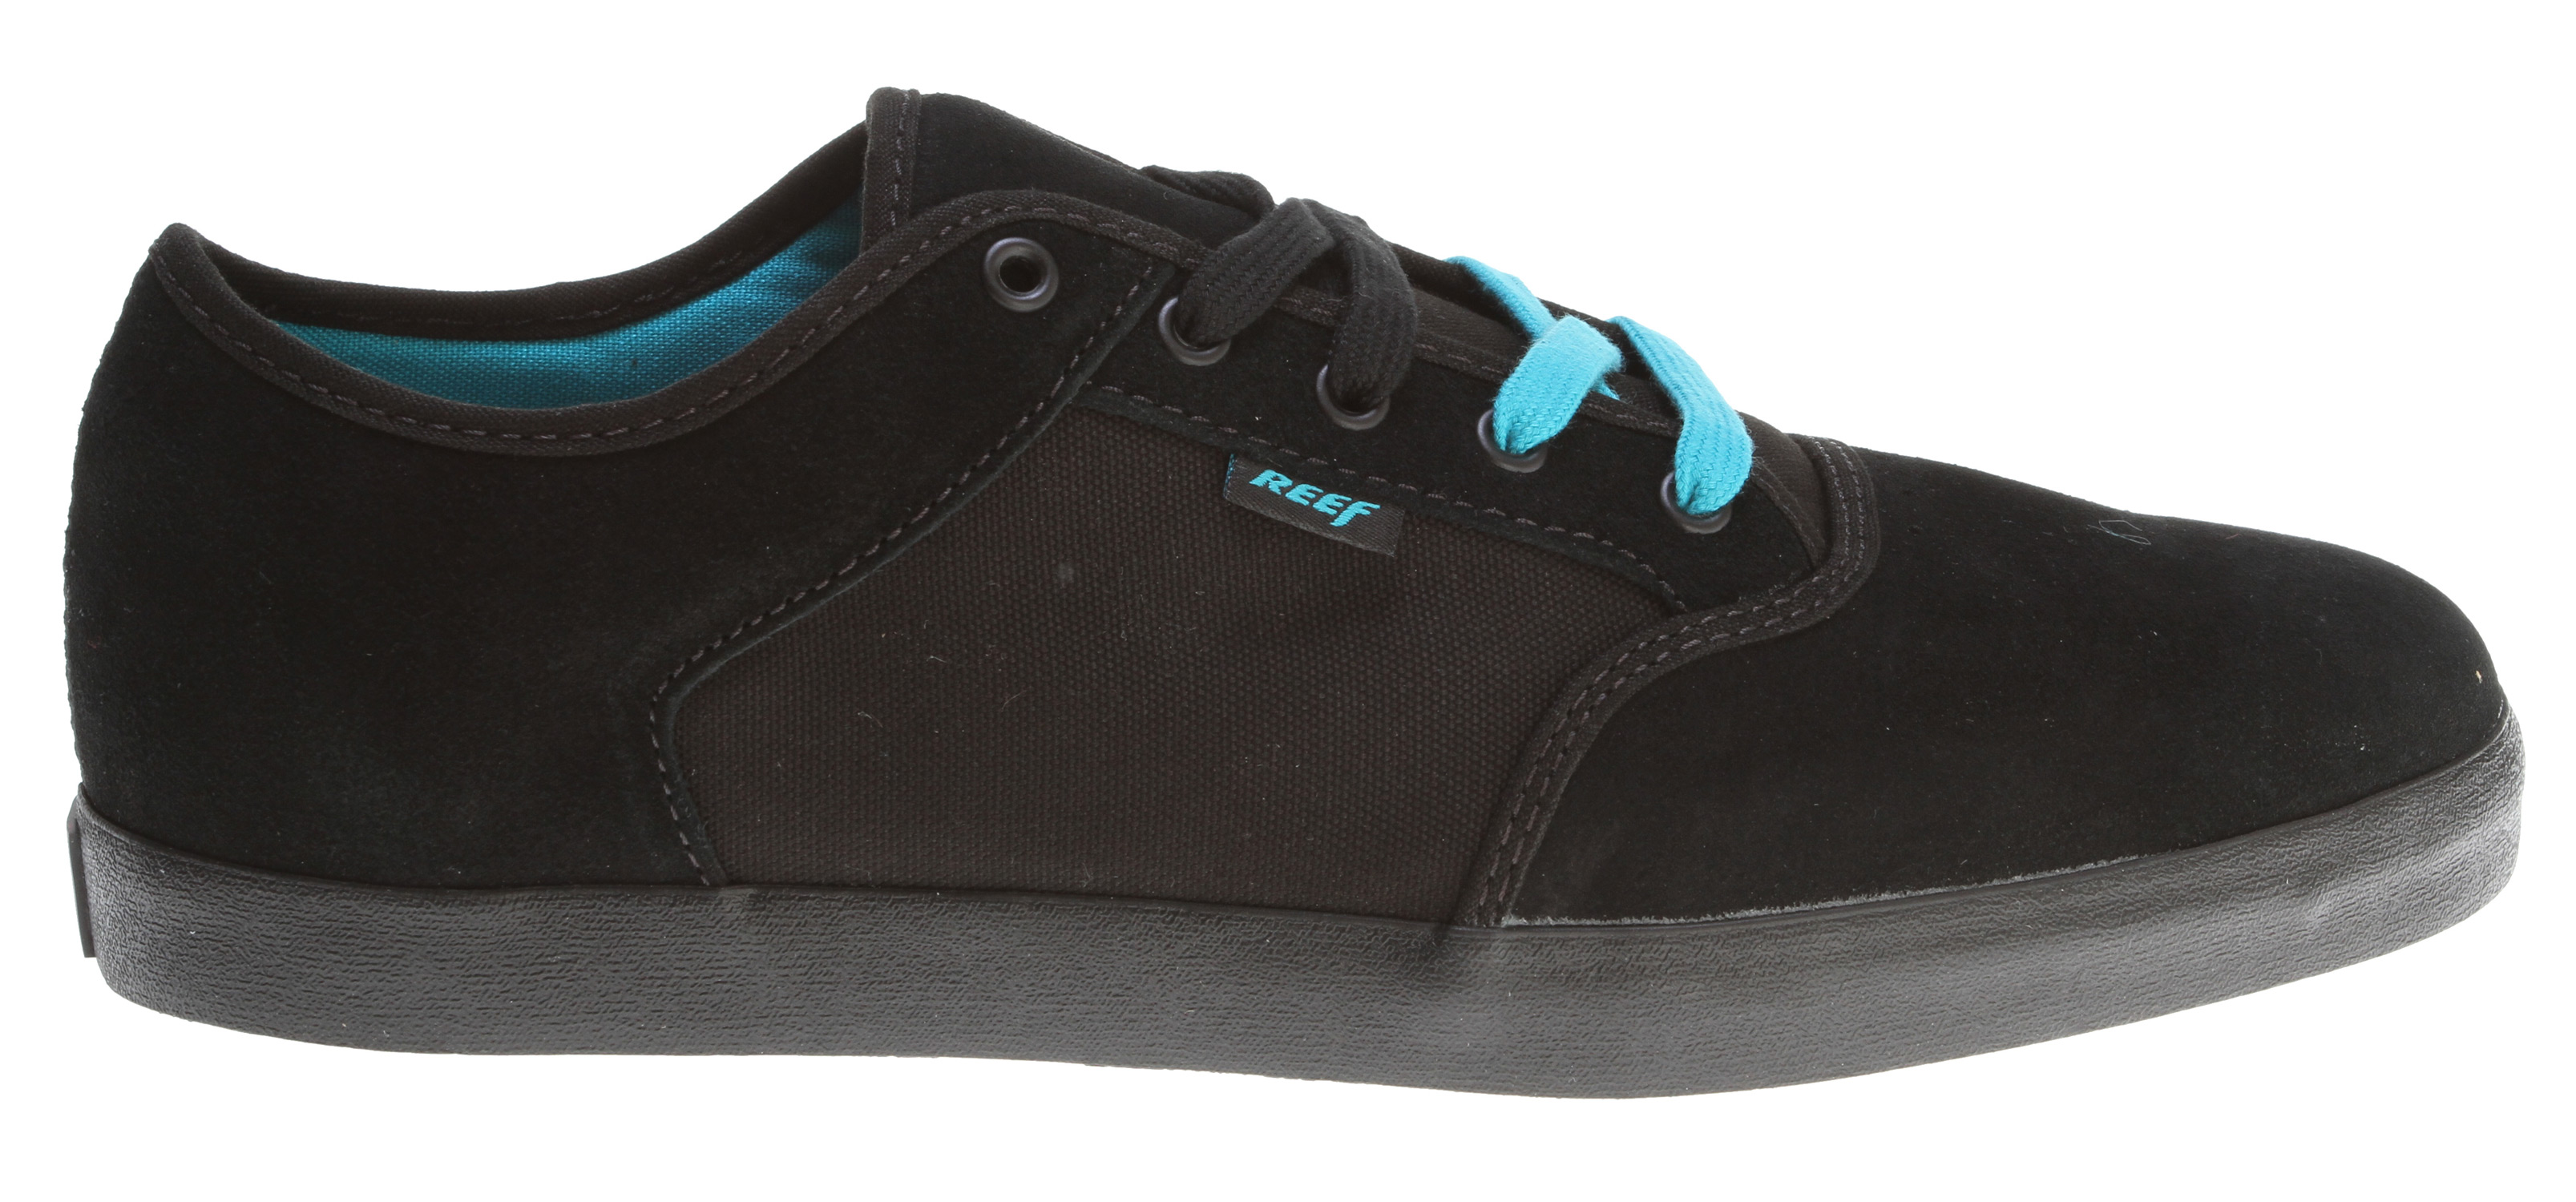 Surf Reef Coastal Brink CC Casual Shoes - $32.95